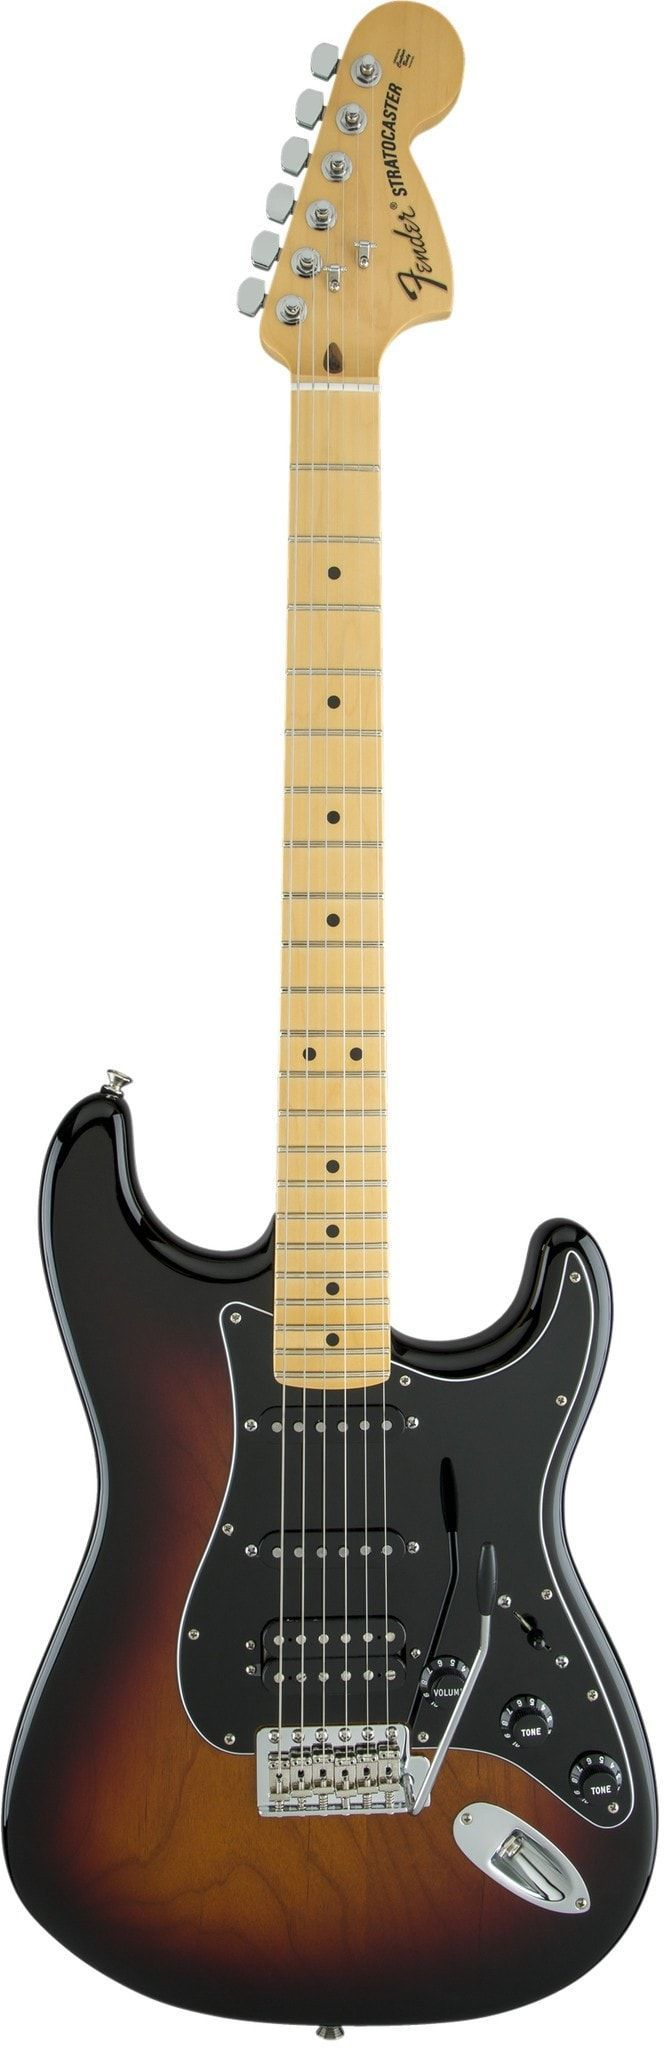 Fender American Special Stratocaster HSS Electric Guitar